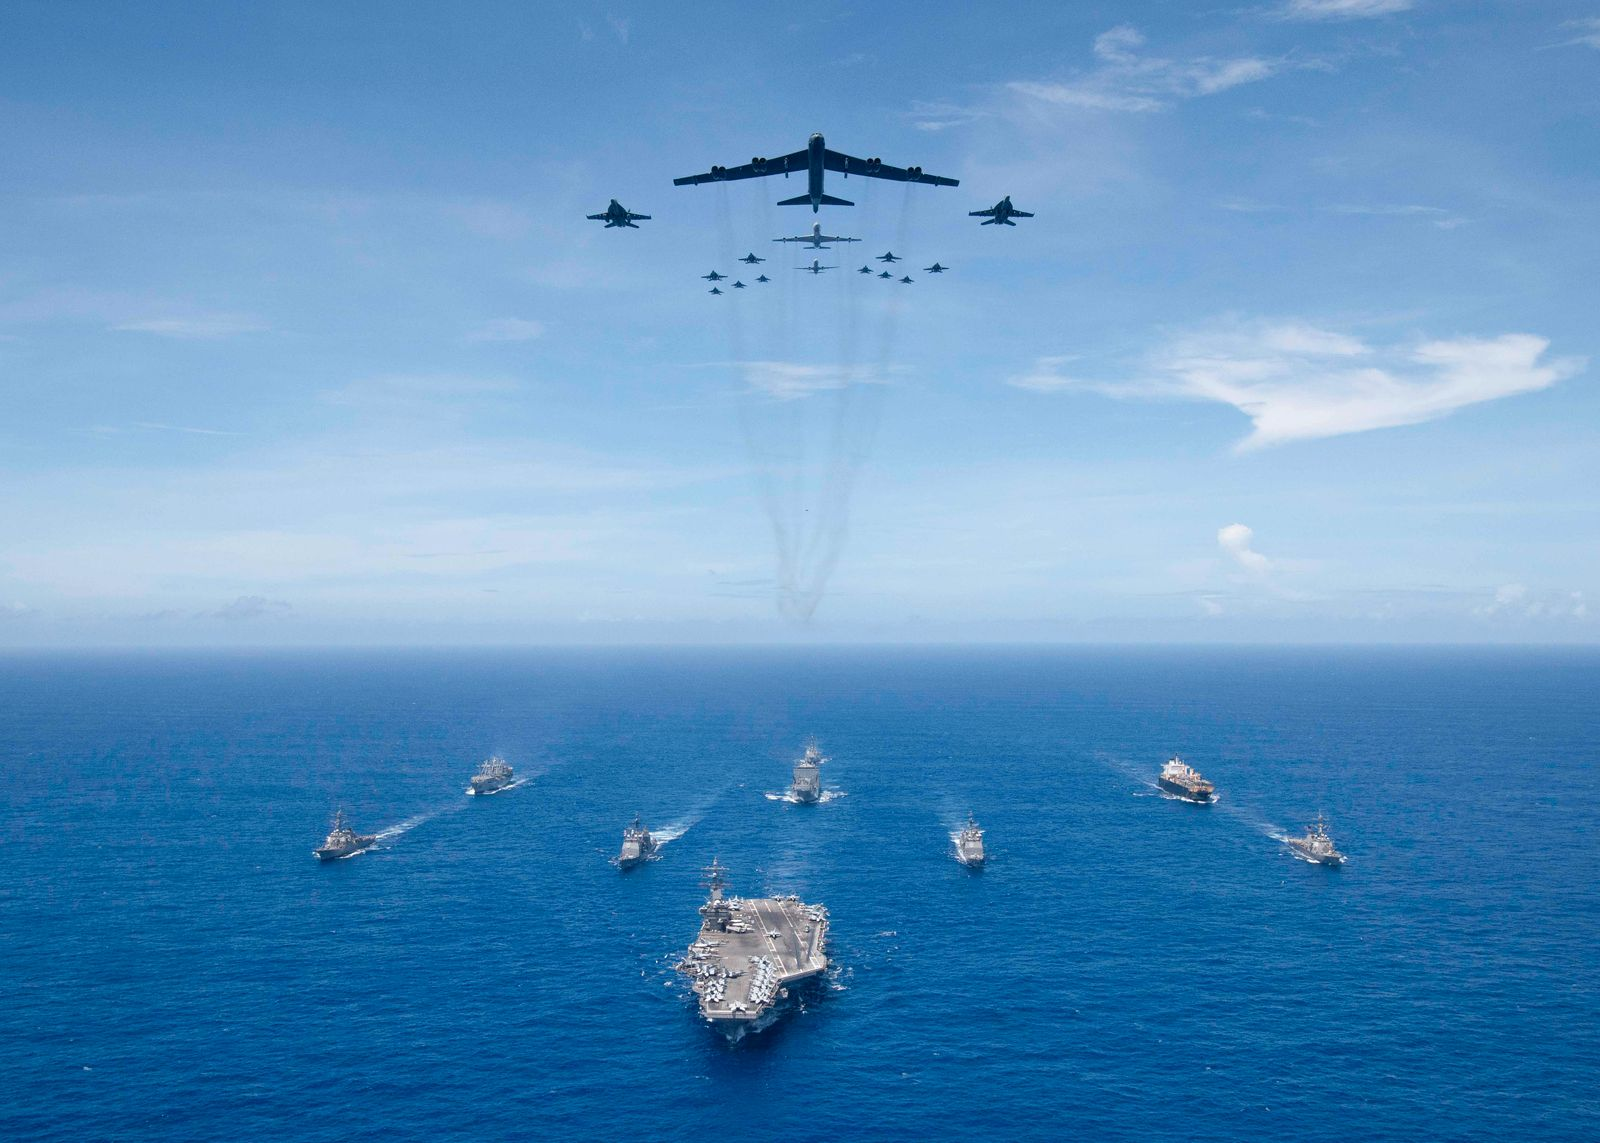 USS Ronald Reagan leads a formation of Carrier Strike Group 5 for a photo exercise.